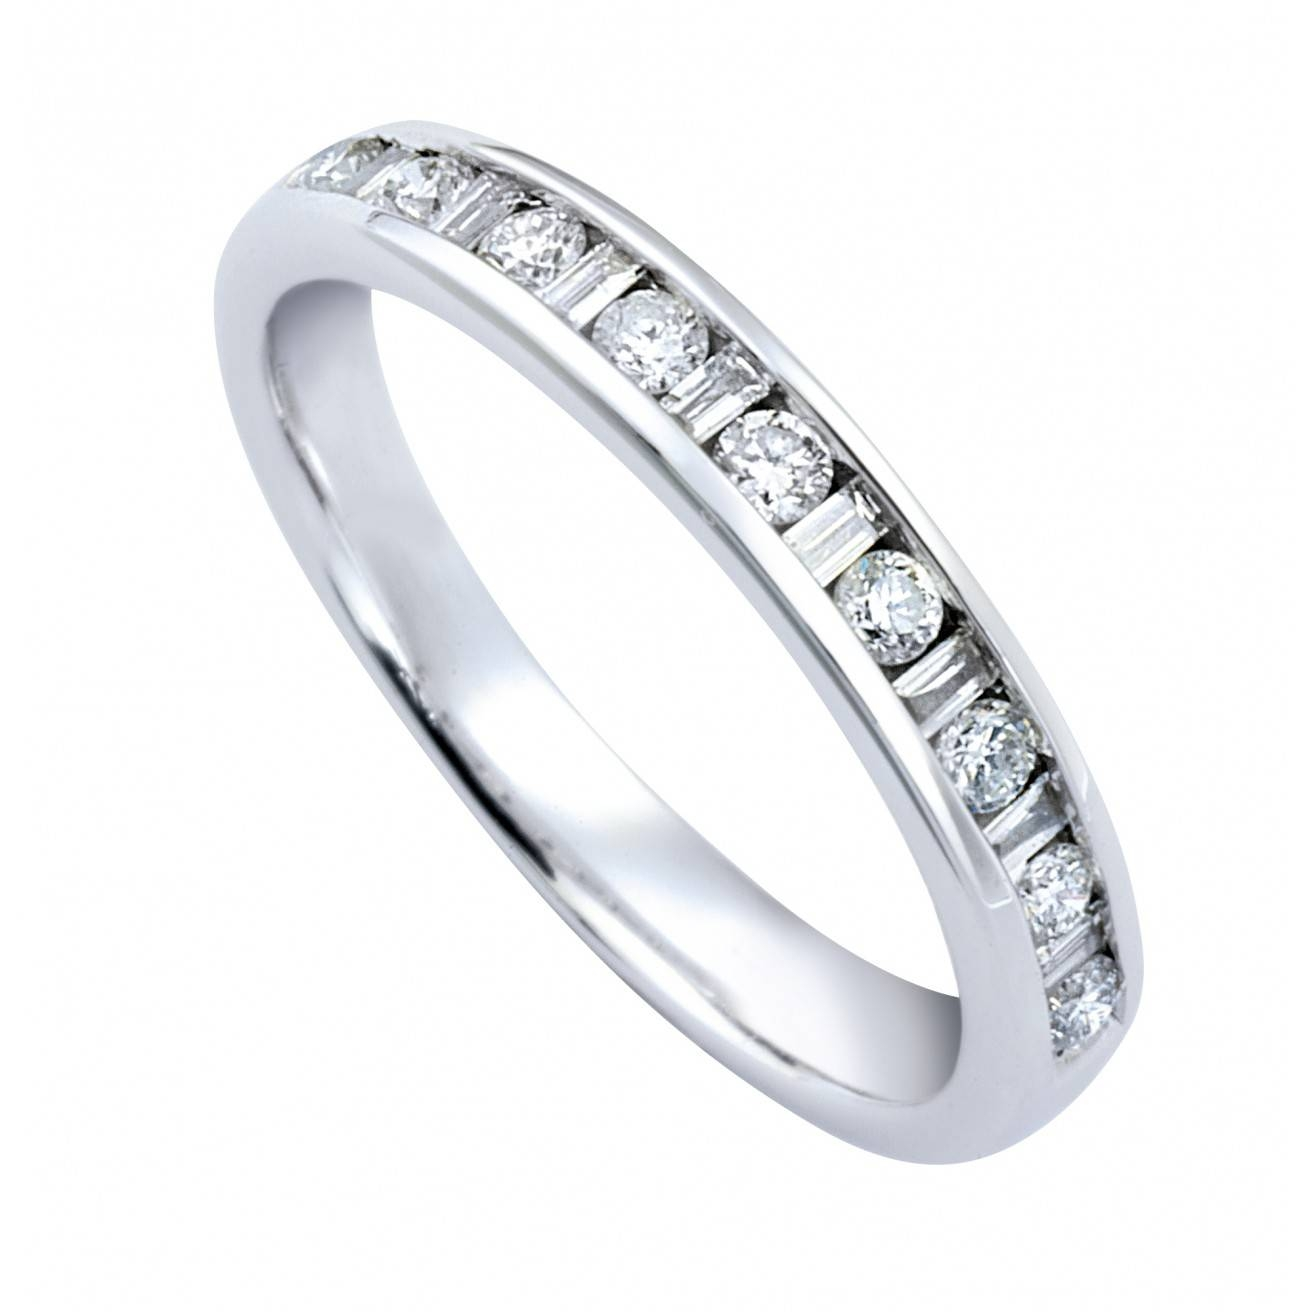 Buy White Gold Wedding Rings Online – Fraser Hart Within White And Gold Wedding Rings (View 8 of 15)